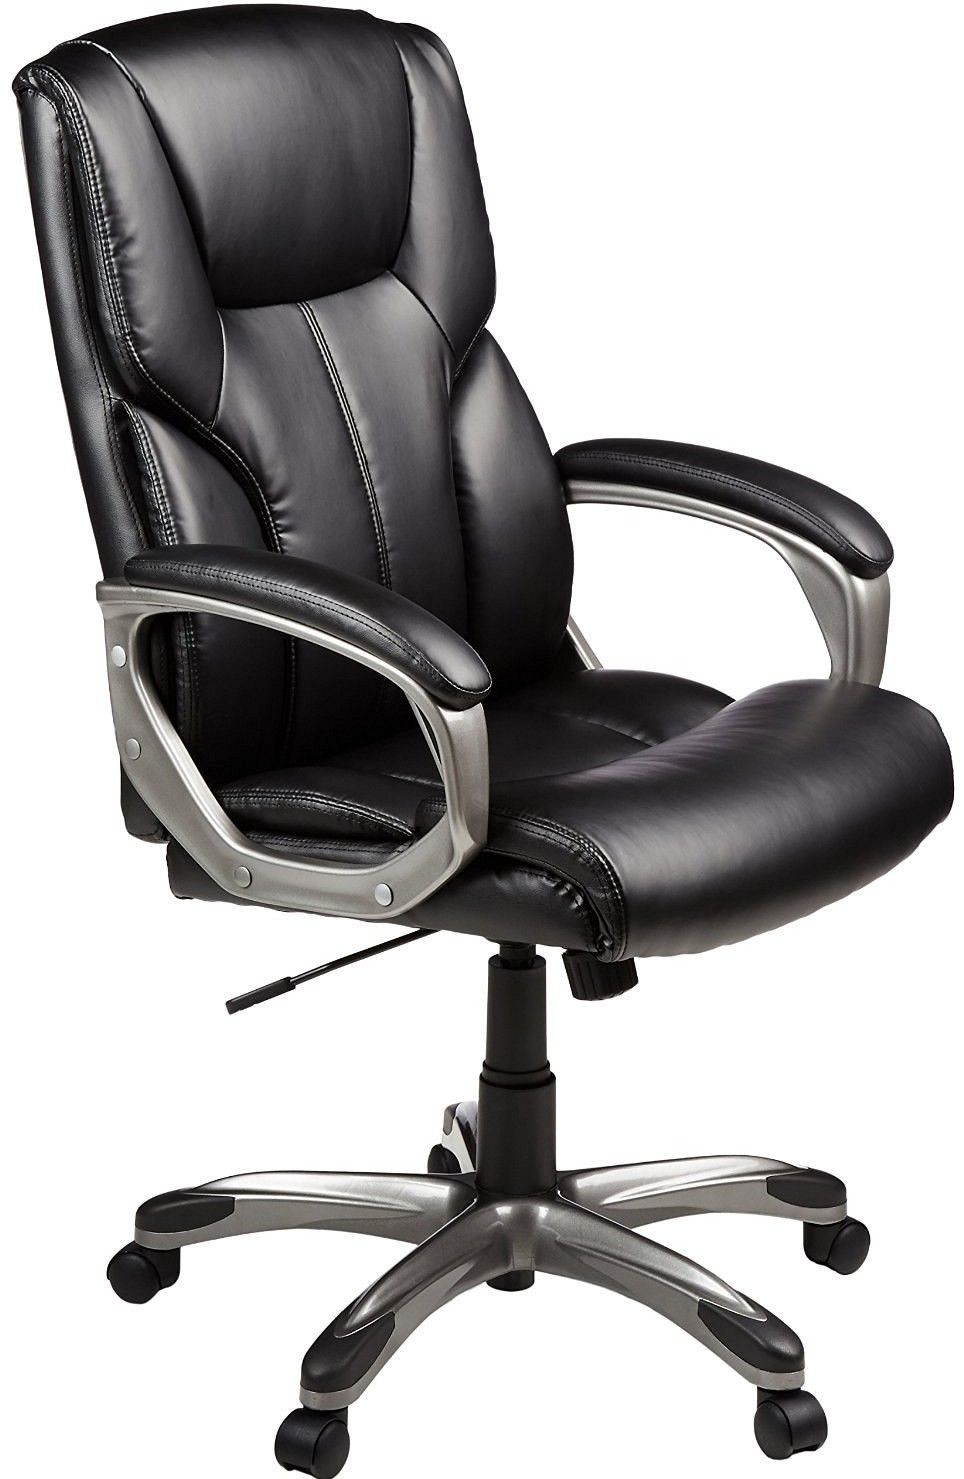 Most Ergonomic Office Chair 22 Splurge Worthy Father S Day Gifts Gift Ideas Best Ergonomic